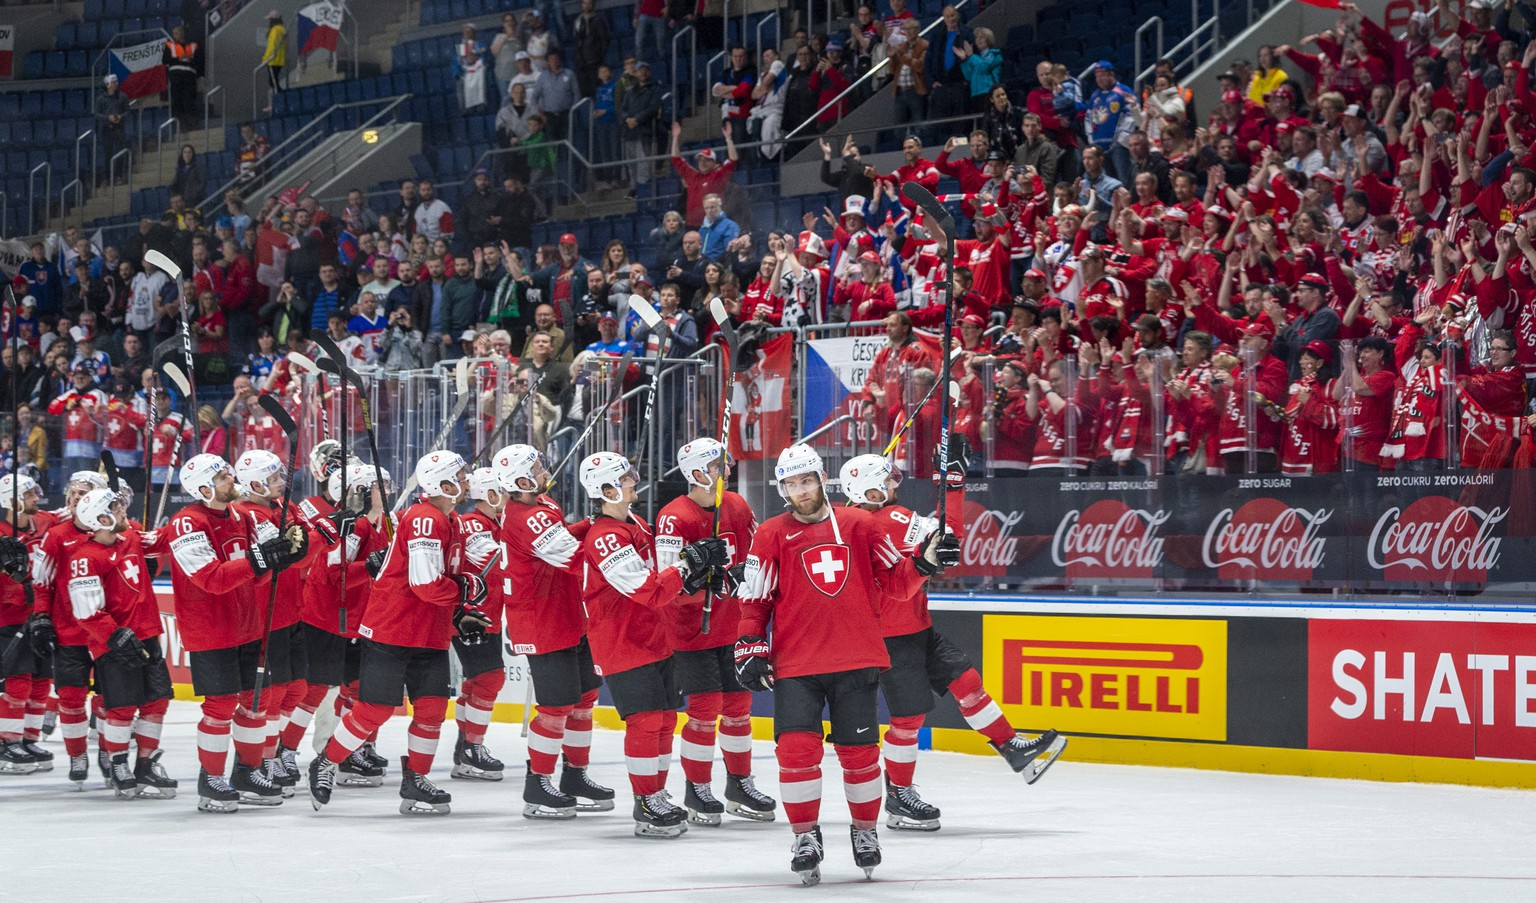 Switzerland's team and fans celebrater after winning 9:0 after the game between Switzerland and Italy, at the IIHF 2019 World Ice Hockey Championships, at the Ondrej Nepela Arena in Bratislava, Slovakia, on Saturday, May 11, 2019. (KEYSTONE/Melanie Duchene)